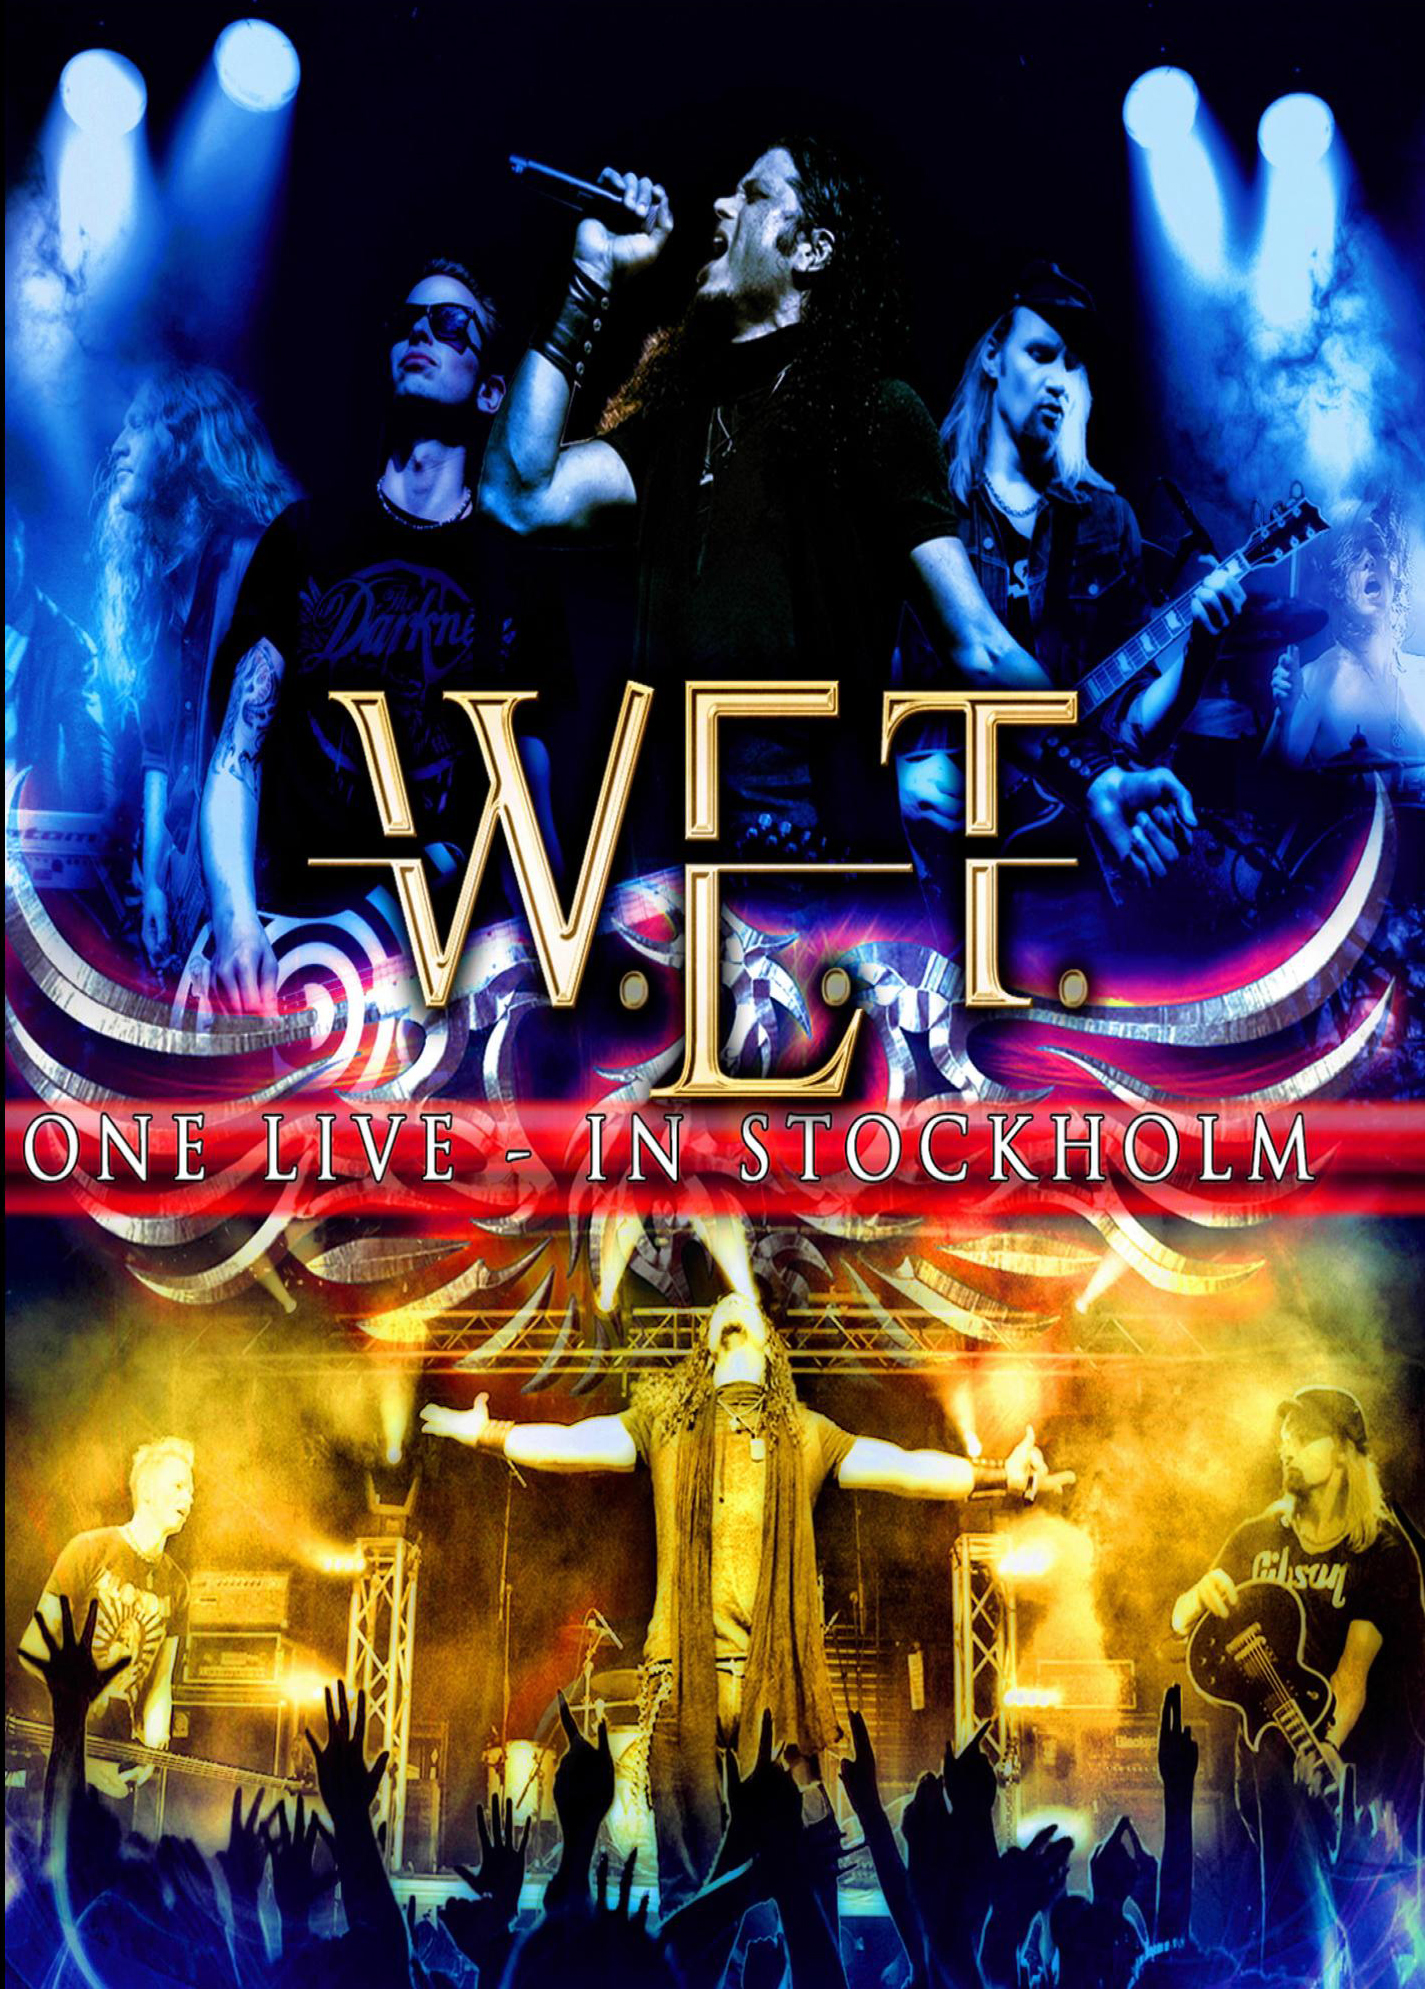 W.E.T - One Live in Stockholm